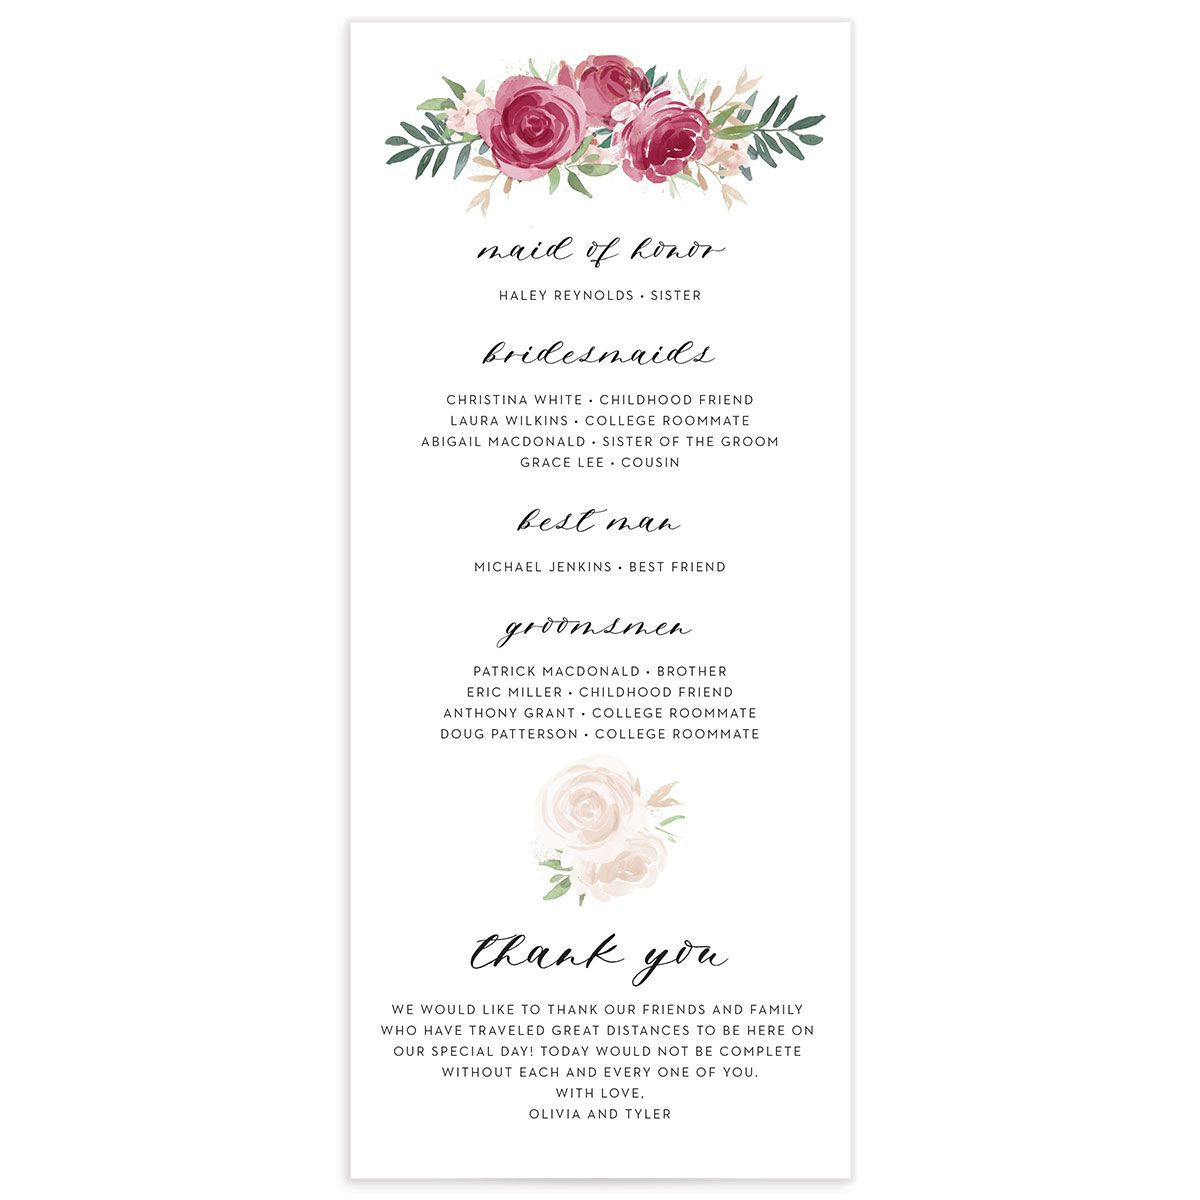 floral bouquet wedding programs in burgundy